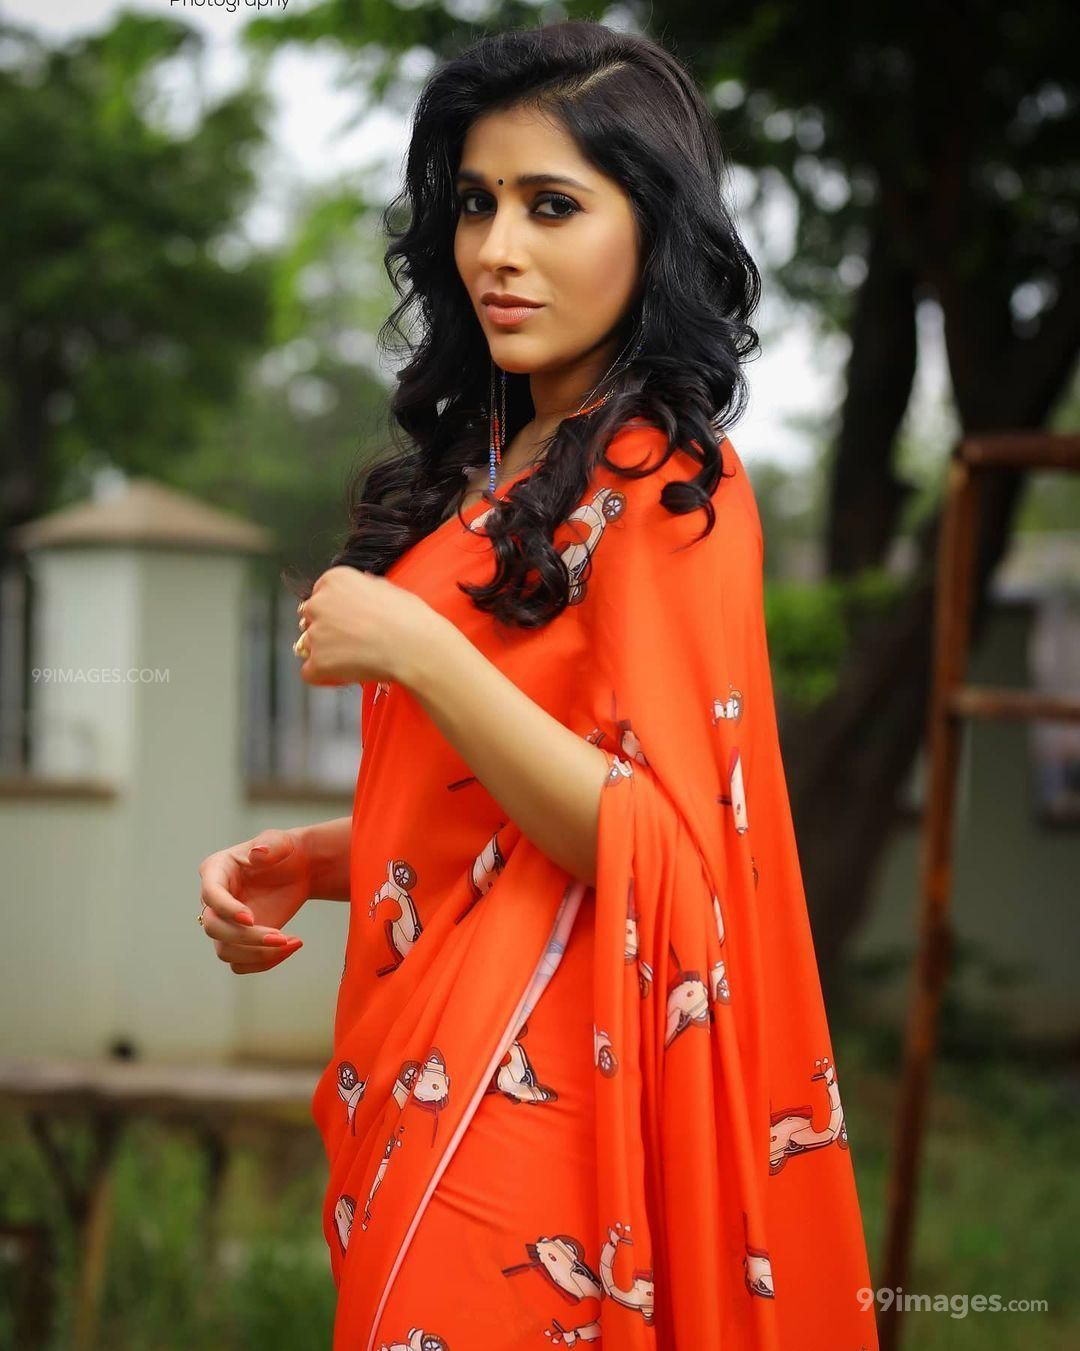 Rashmi Gautam Beautiful HD Photoshoot Stills (1080p) (623369) - Rashmi Gautam